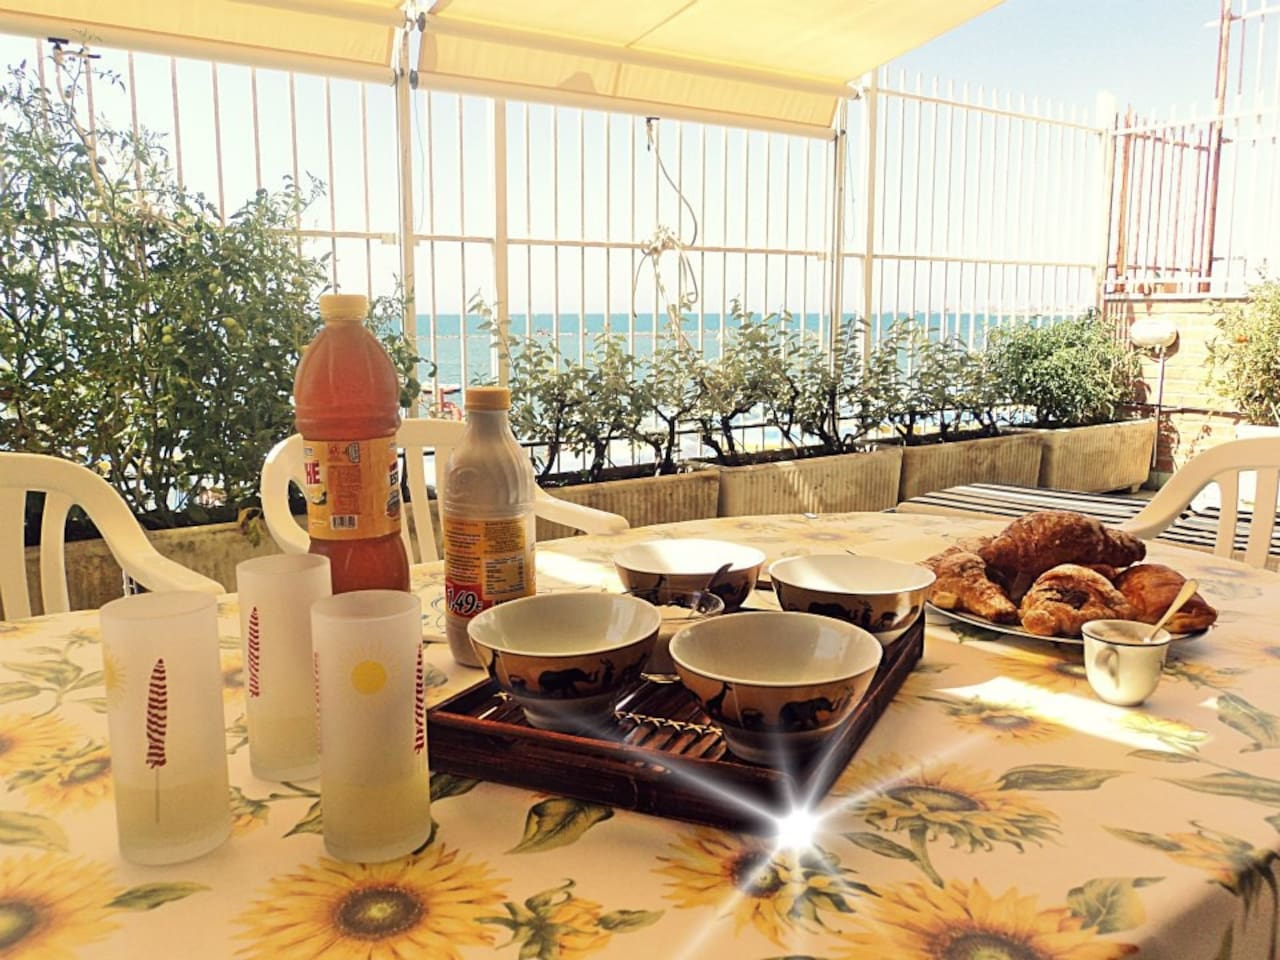 BREAKFAST ON THE MEDITERRANEAN SEA